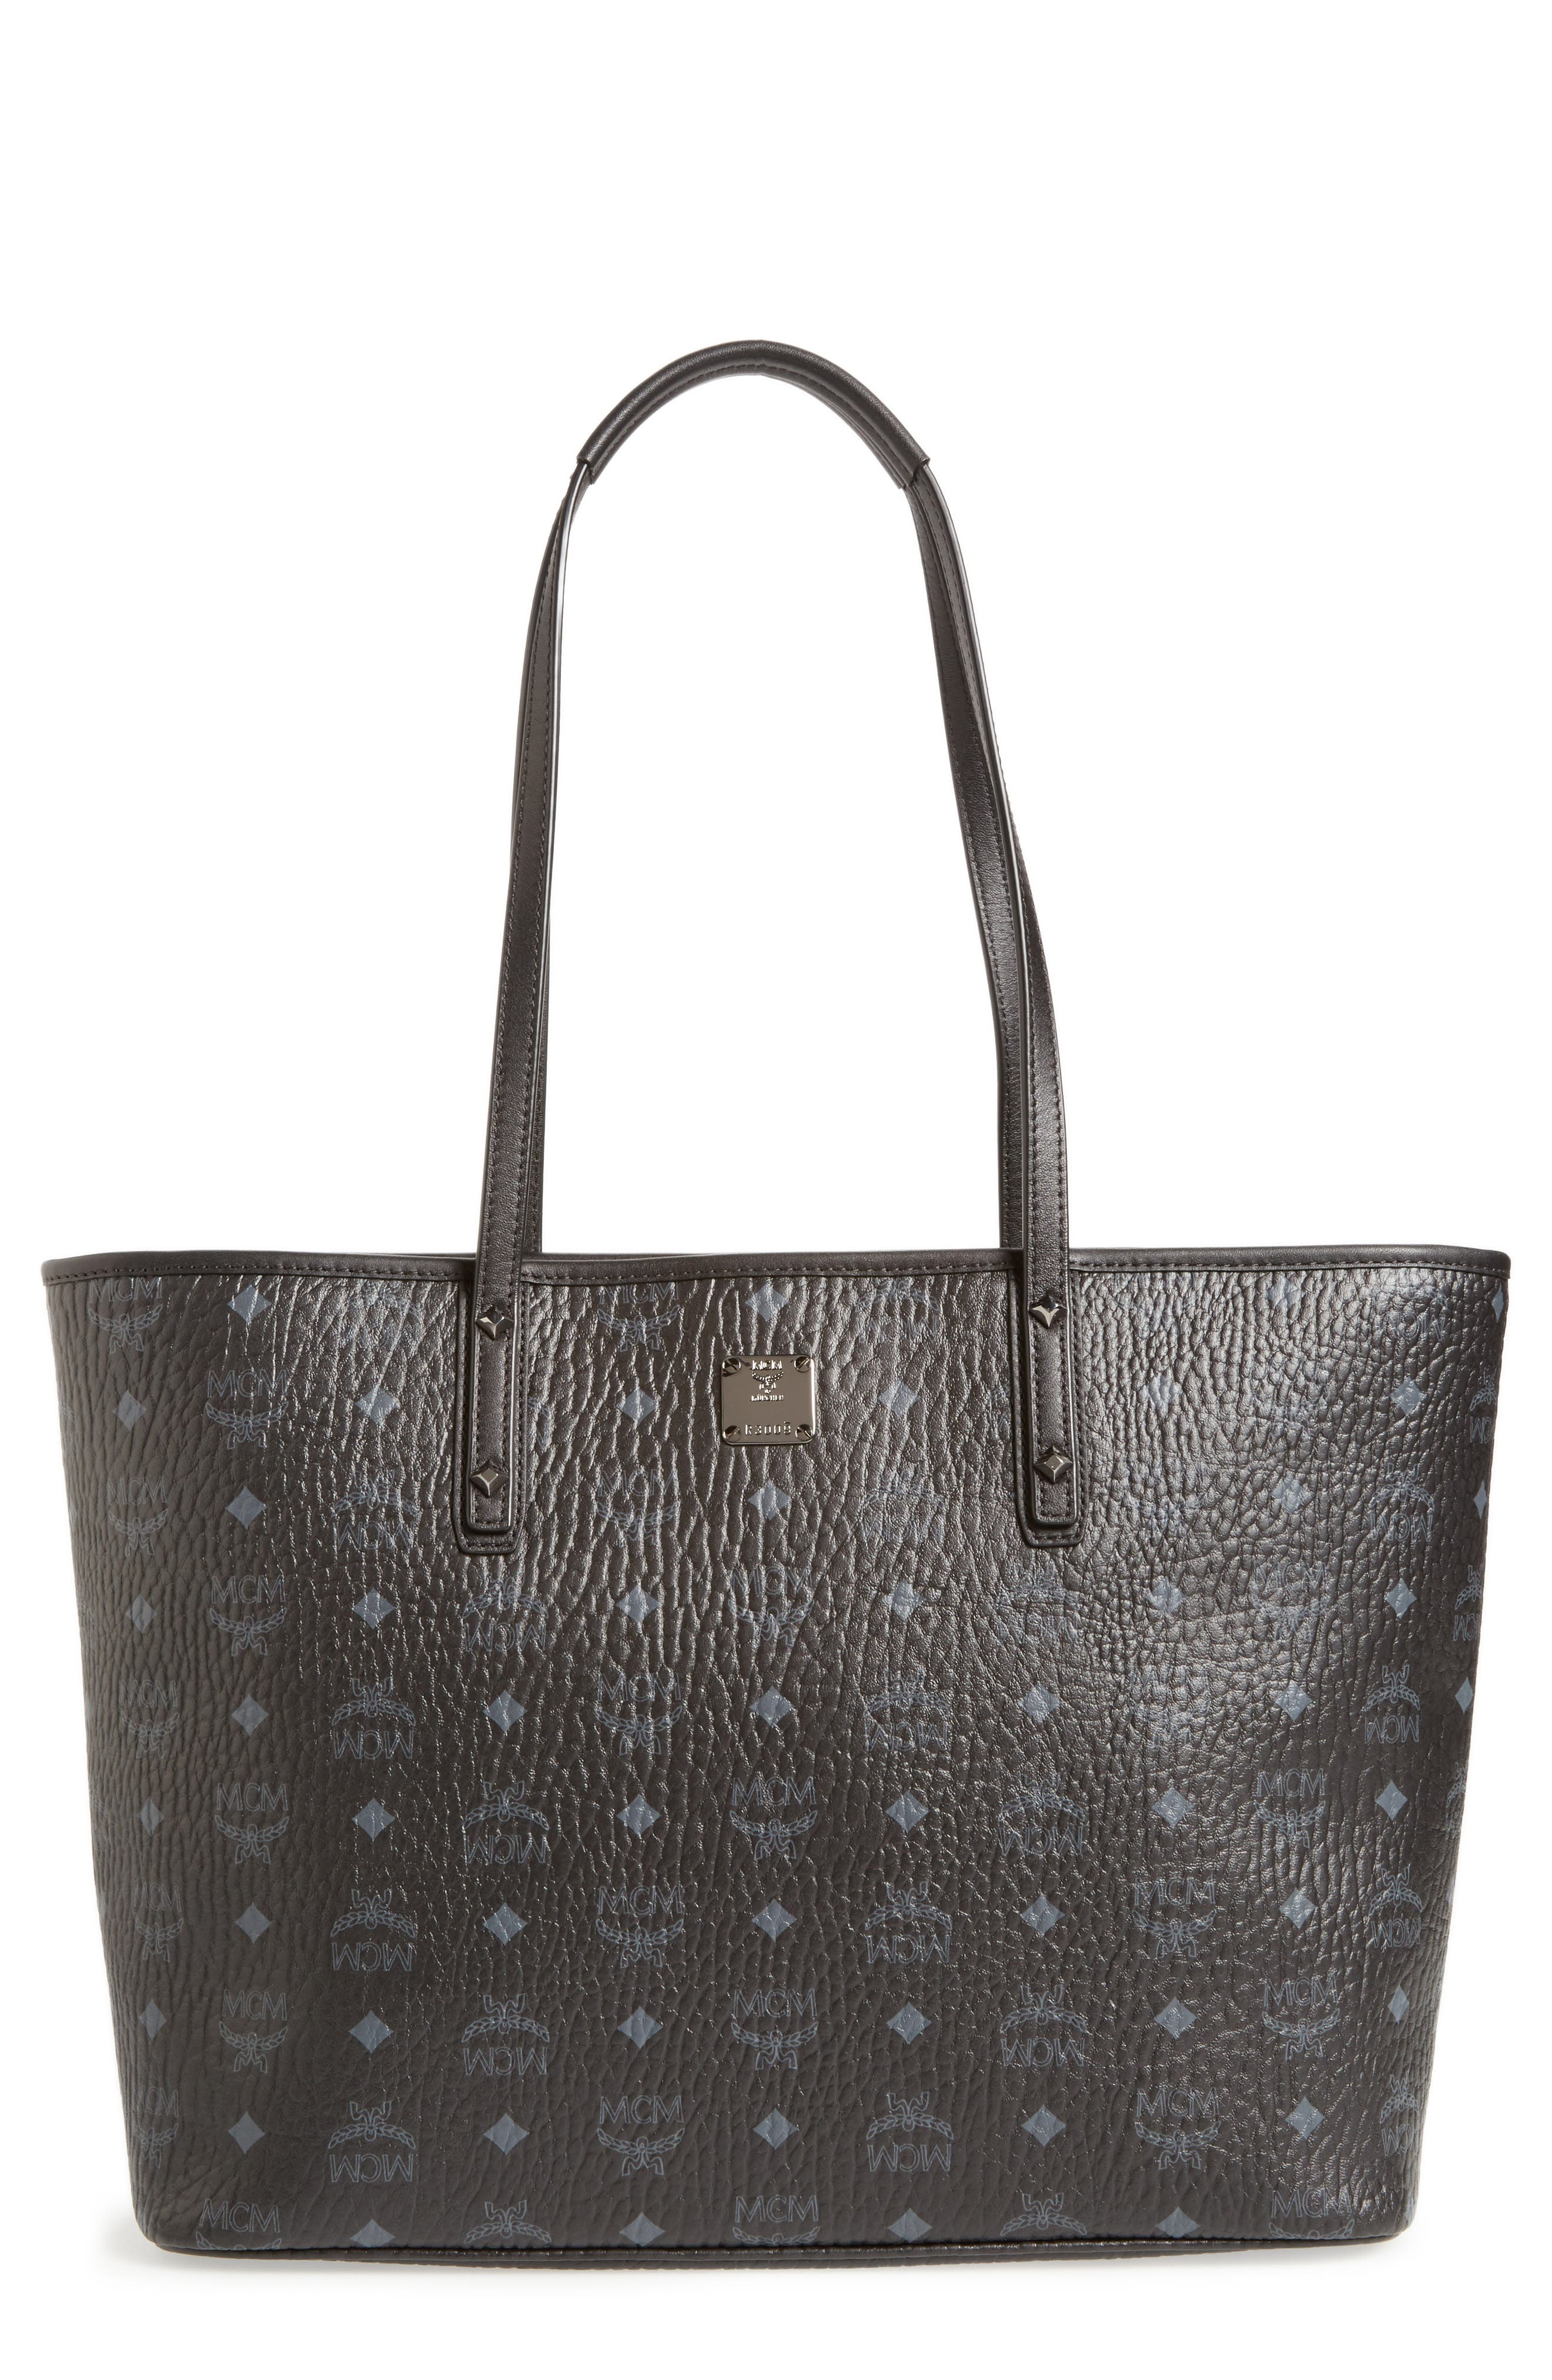 Alternate Image 1 Selected - MCM Medium Anya Tote